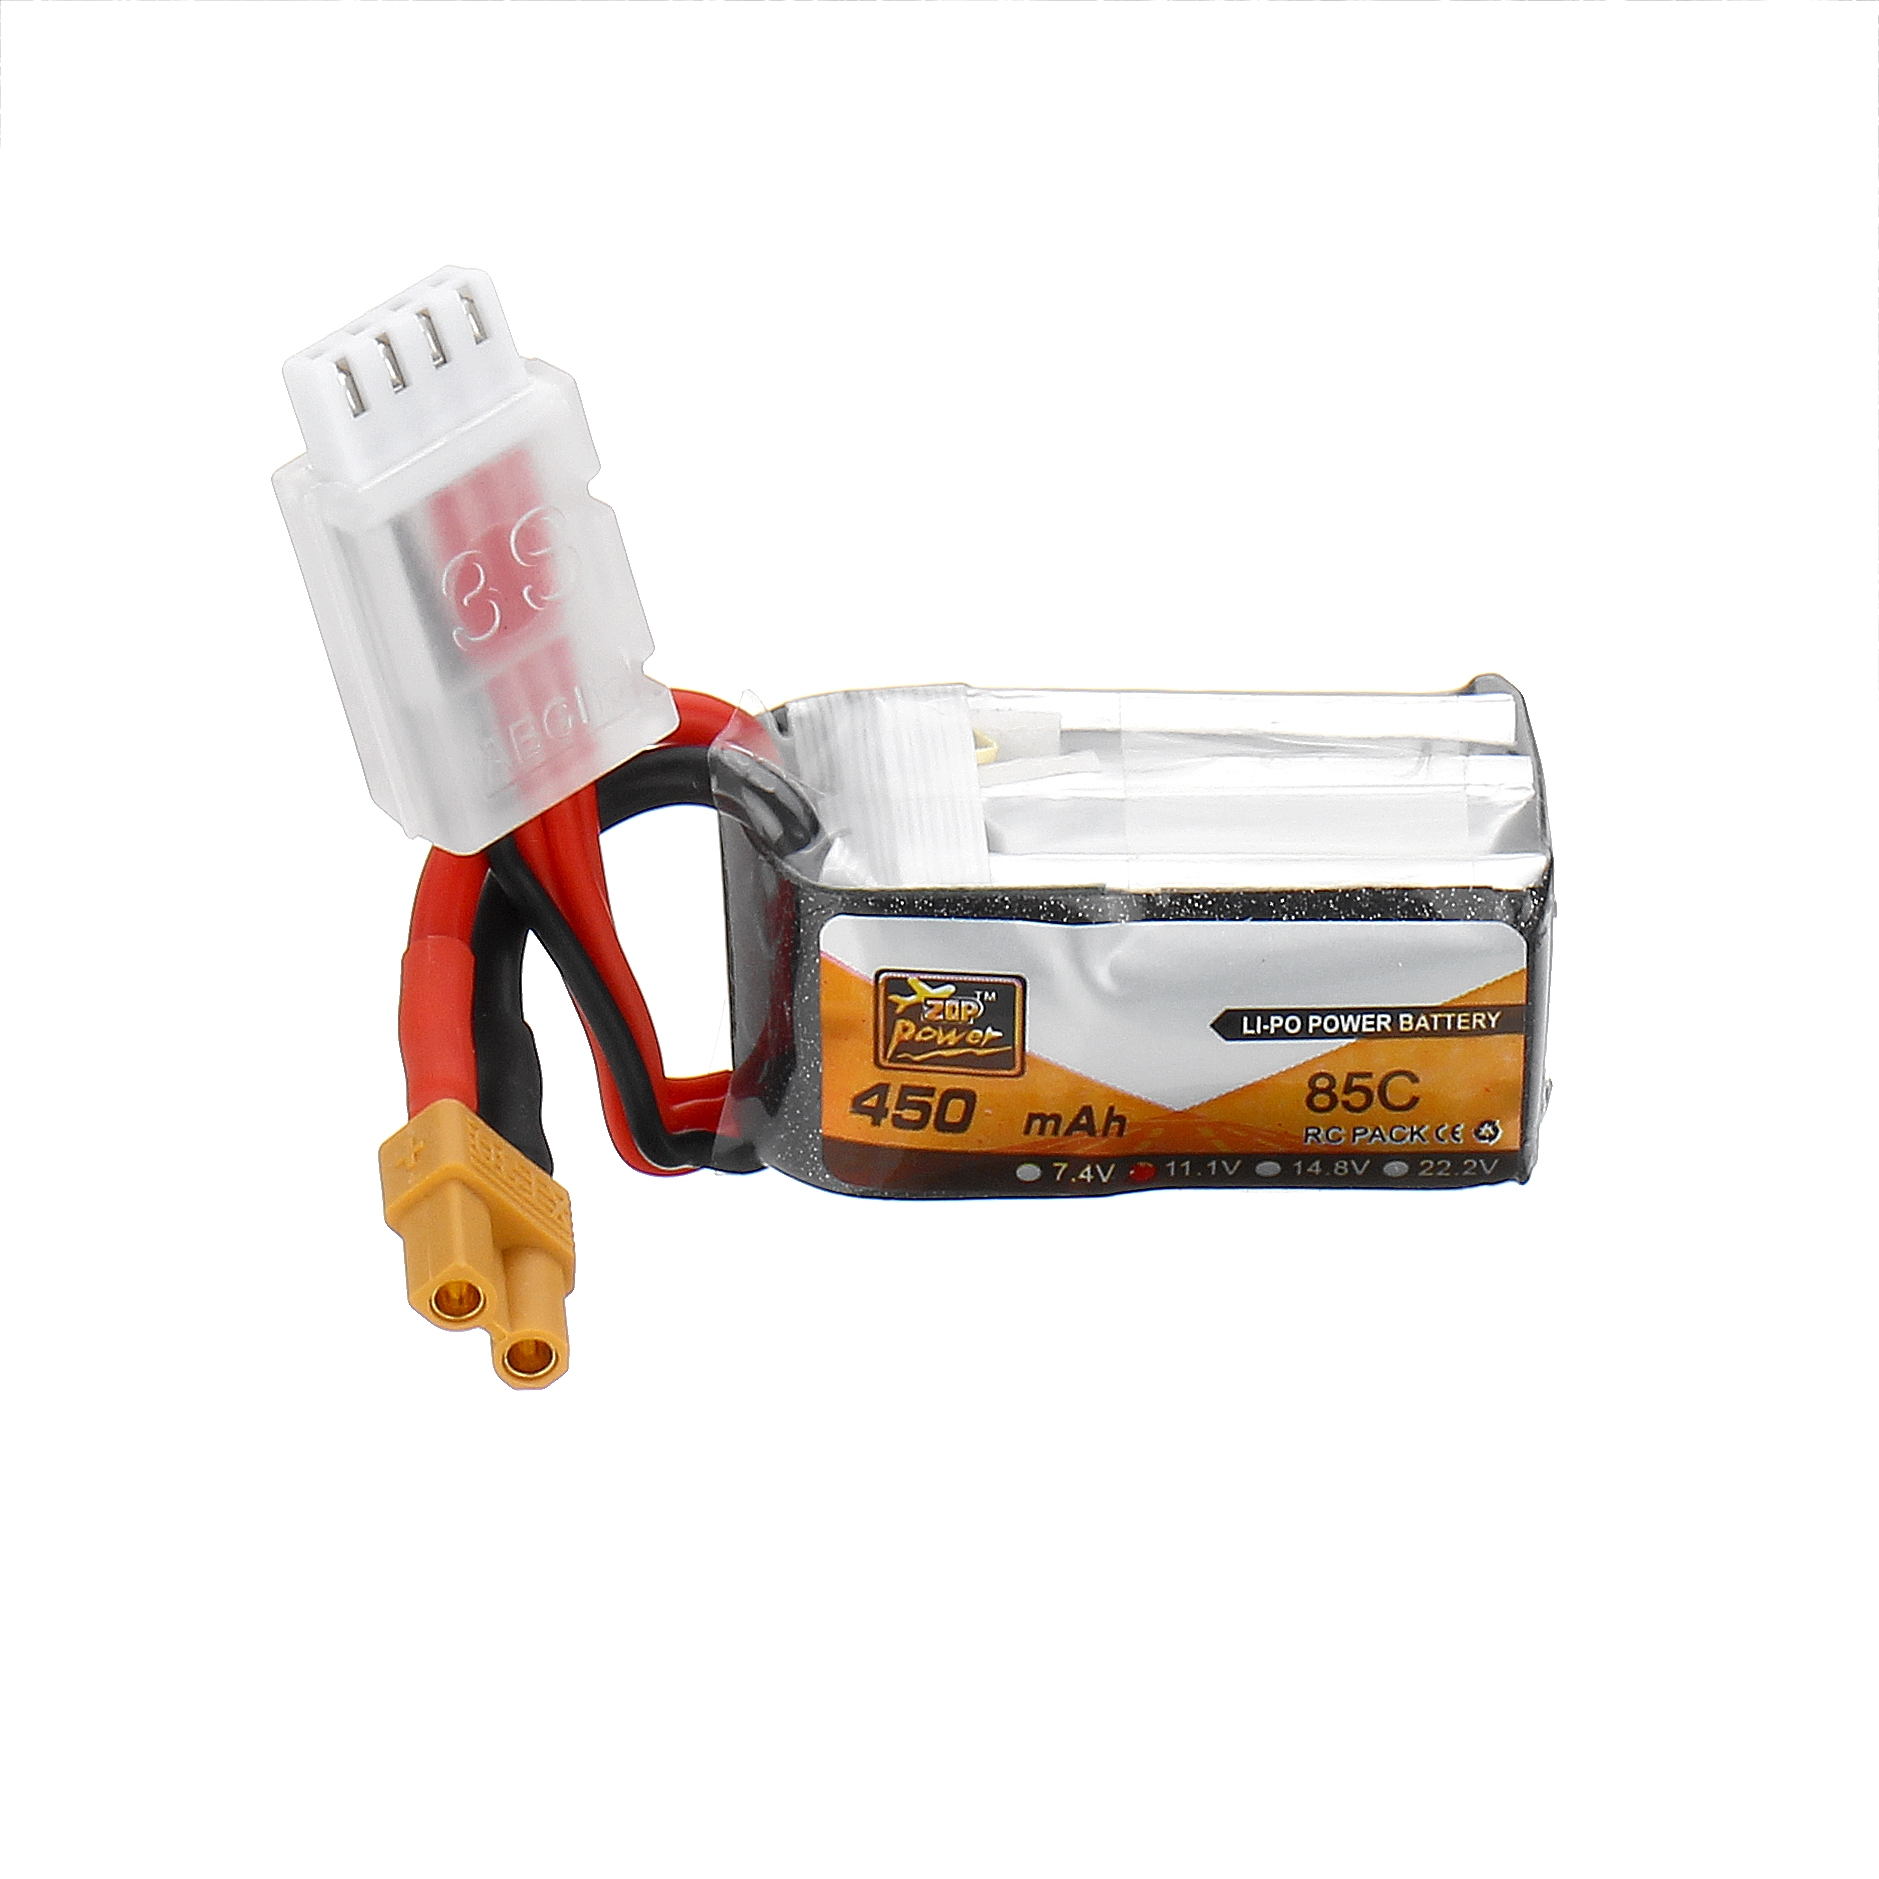 ZOP Power 11.1V 450mAh 85C 3S Lipo Battery XT30 Plug for Eachine Lizard95 FPV Racer